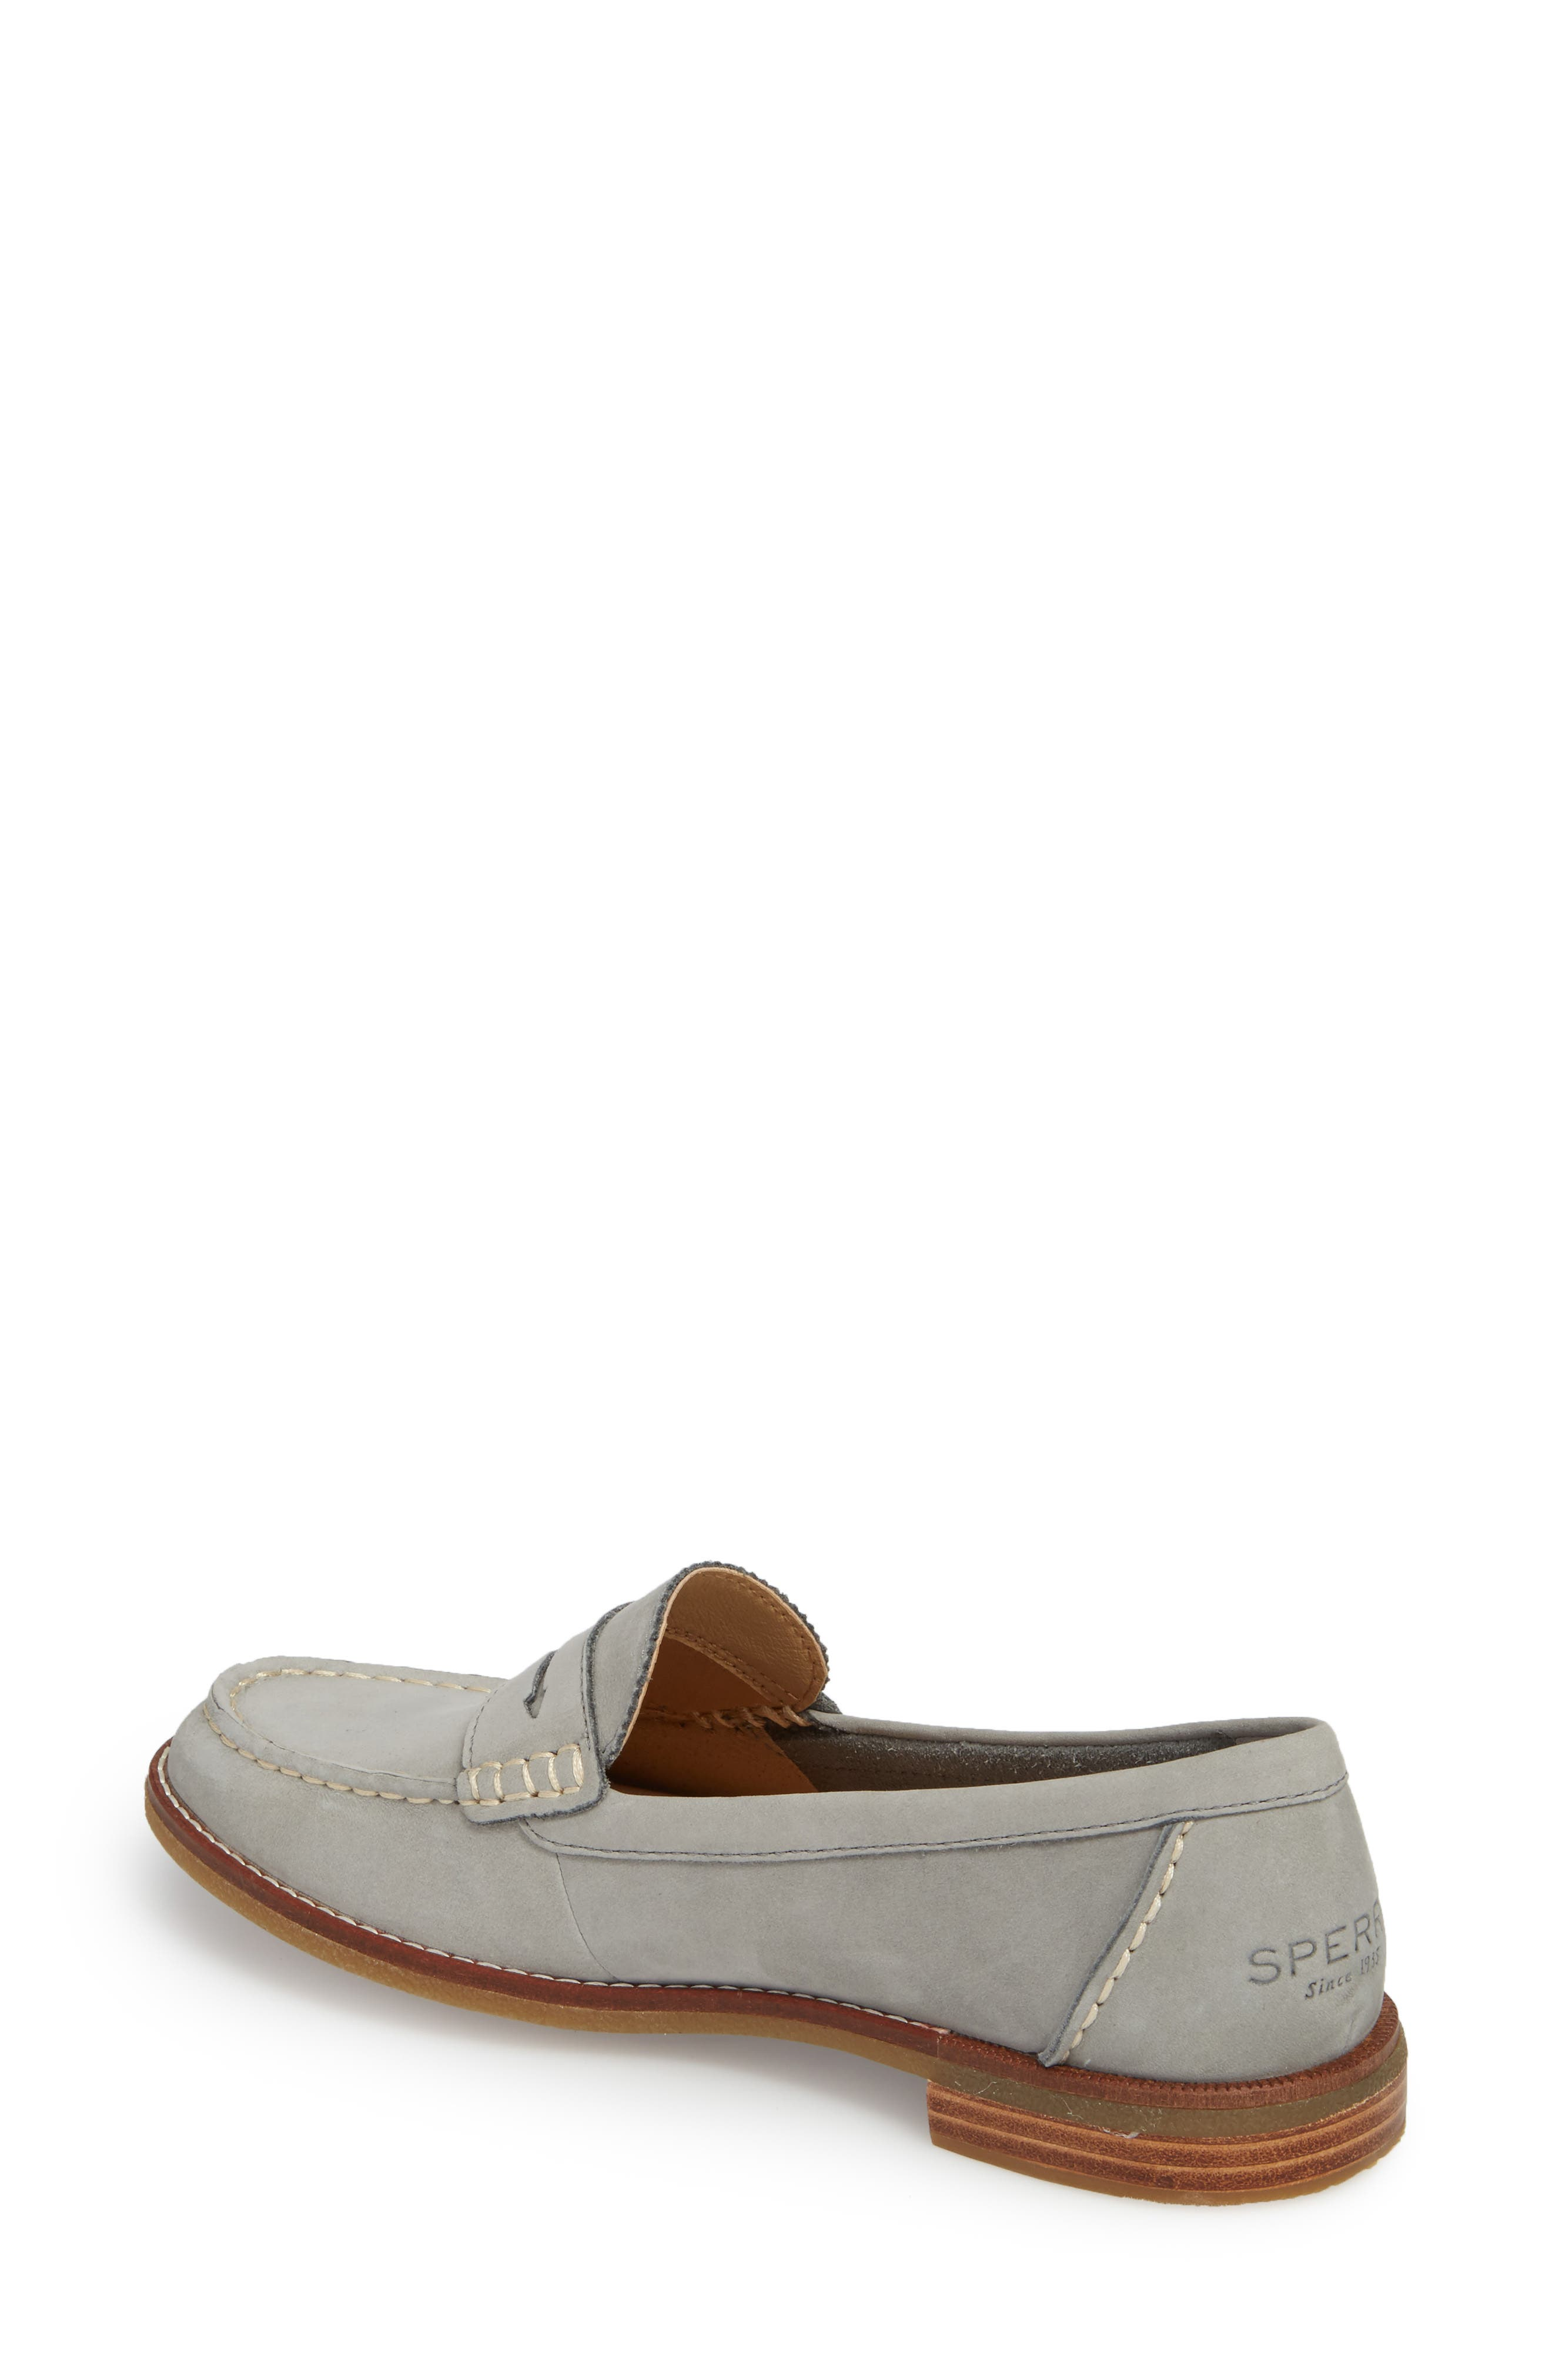 SPERRY, Seaport Penny Loafer, Alternate thumbnail 2, color, GREY LEATHER